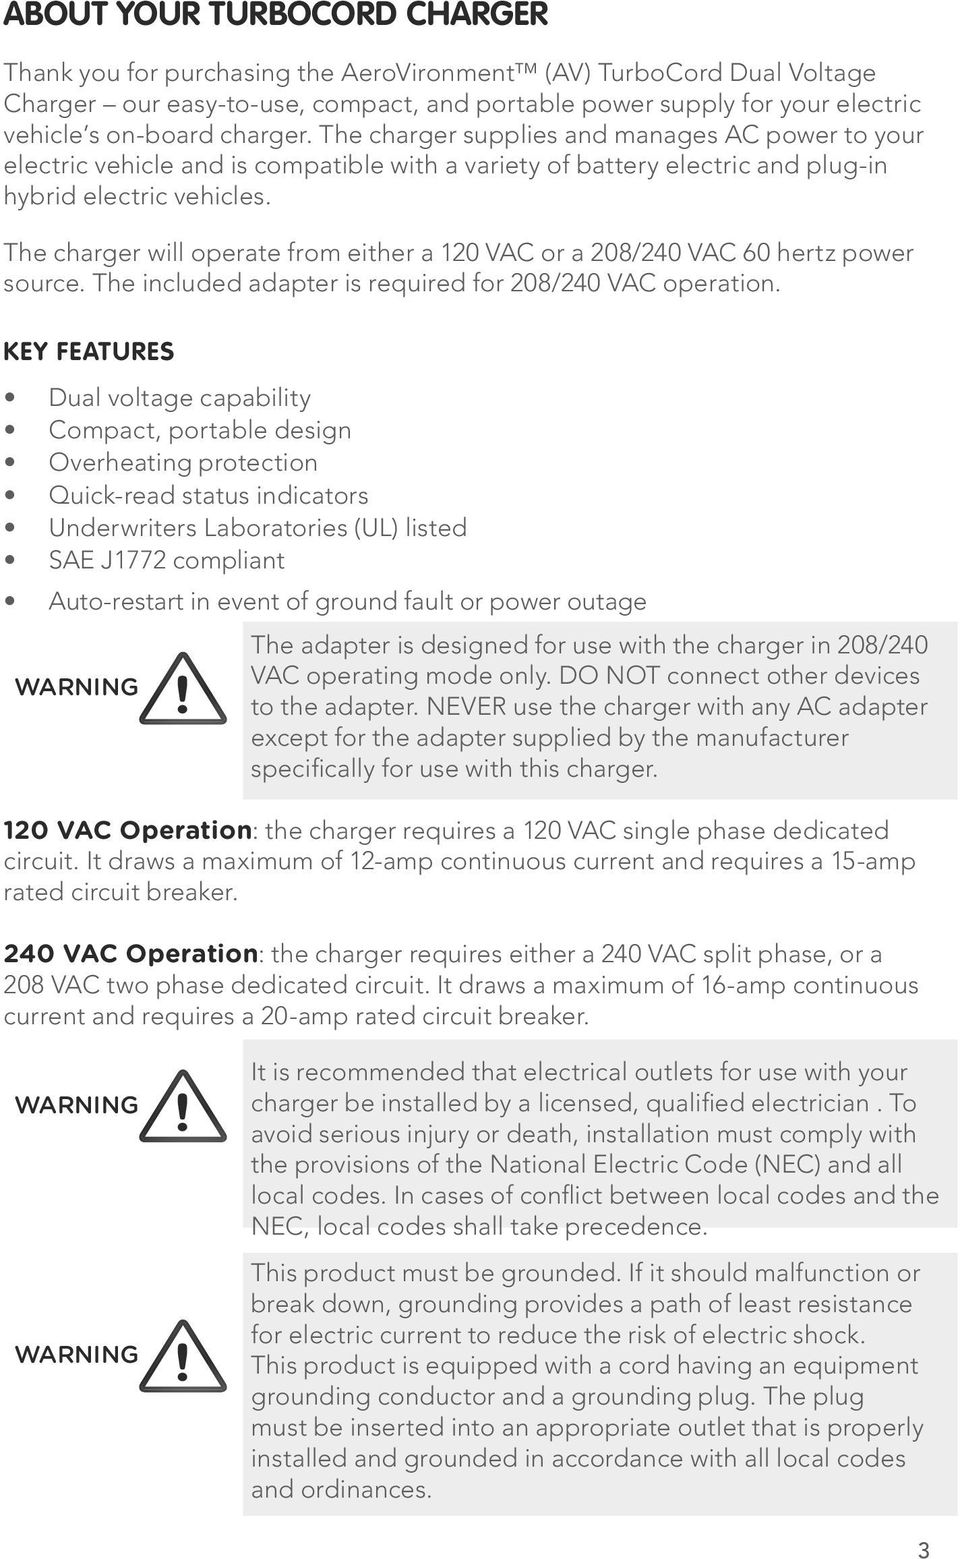 The charger will operate from either a 120 VAC or a 208/240 VAC 60 hertz power source. The included adapter is required for 208/240 VAC operation.